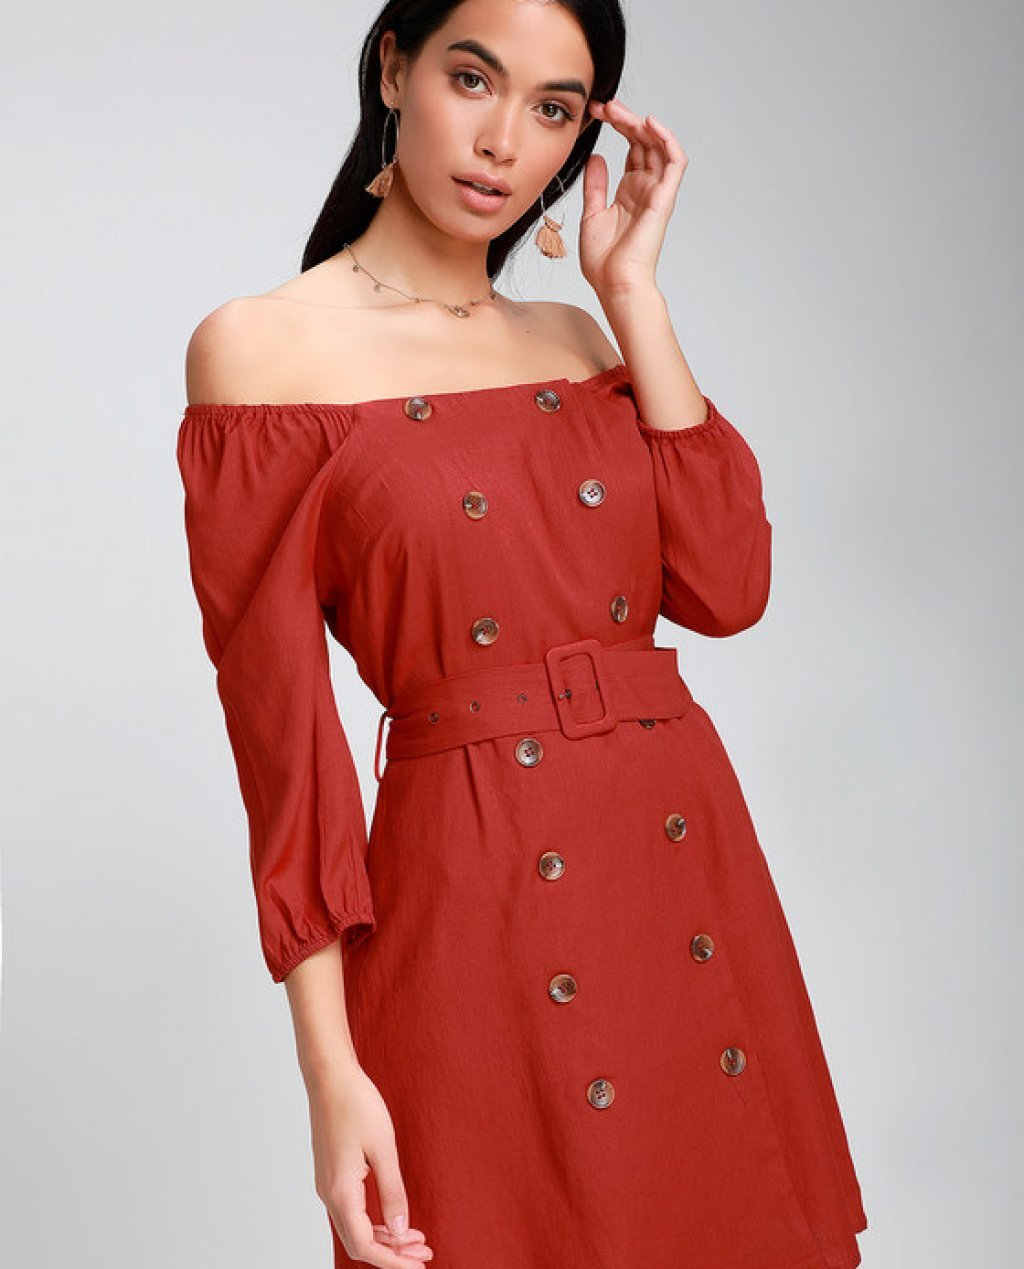 Fell In Love Rust Red Button Front Off-the-Shoulder Dress